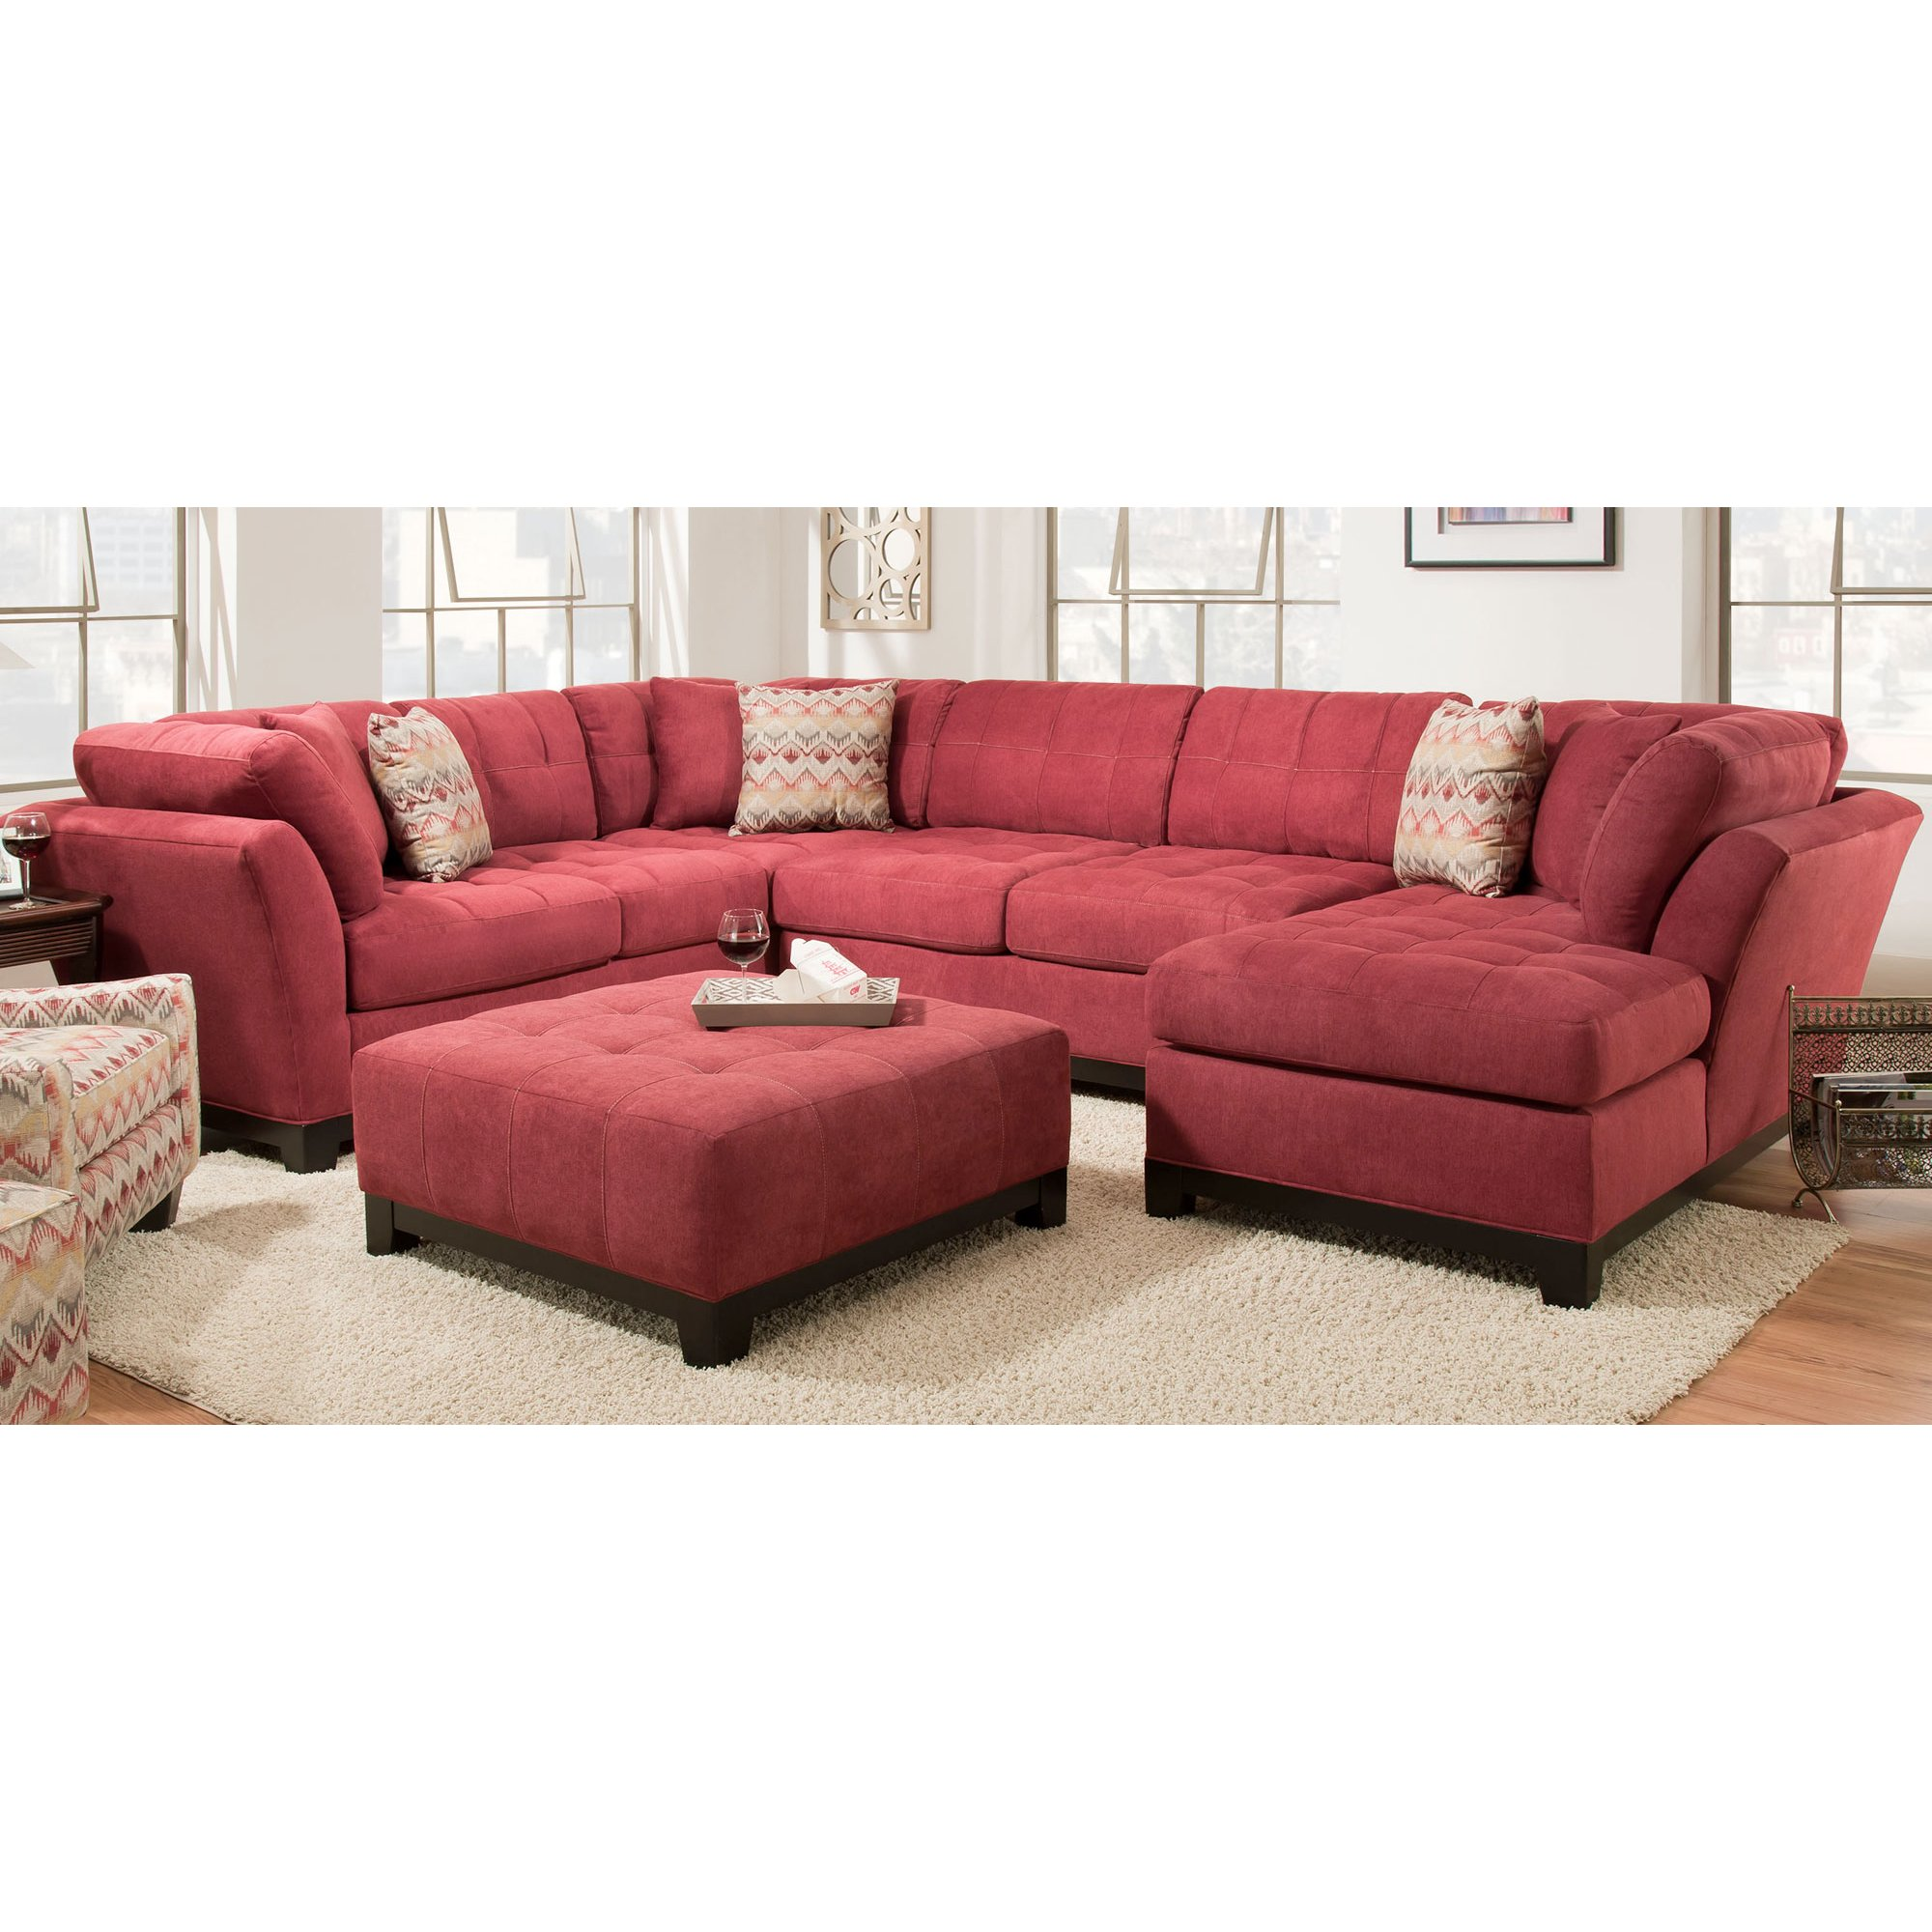 furniture corner enchanting chaise sectional sofa with buy red sienna of raf ashley maier